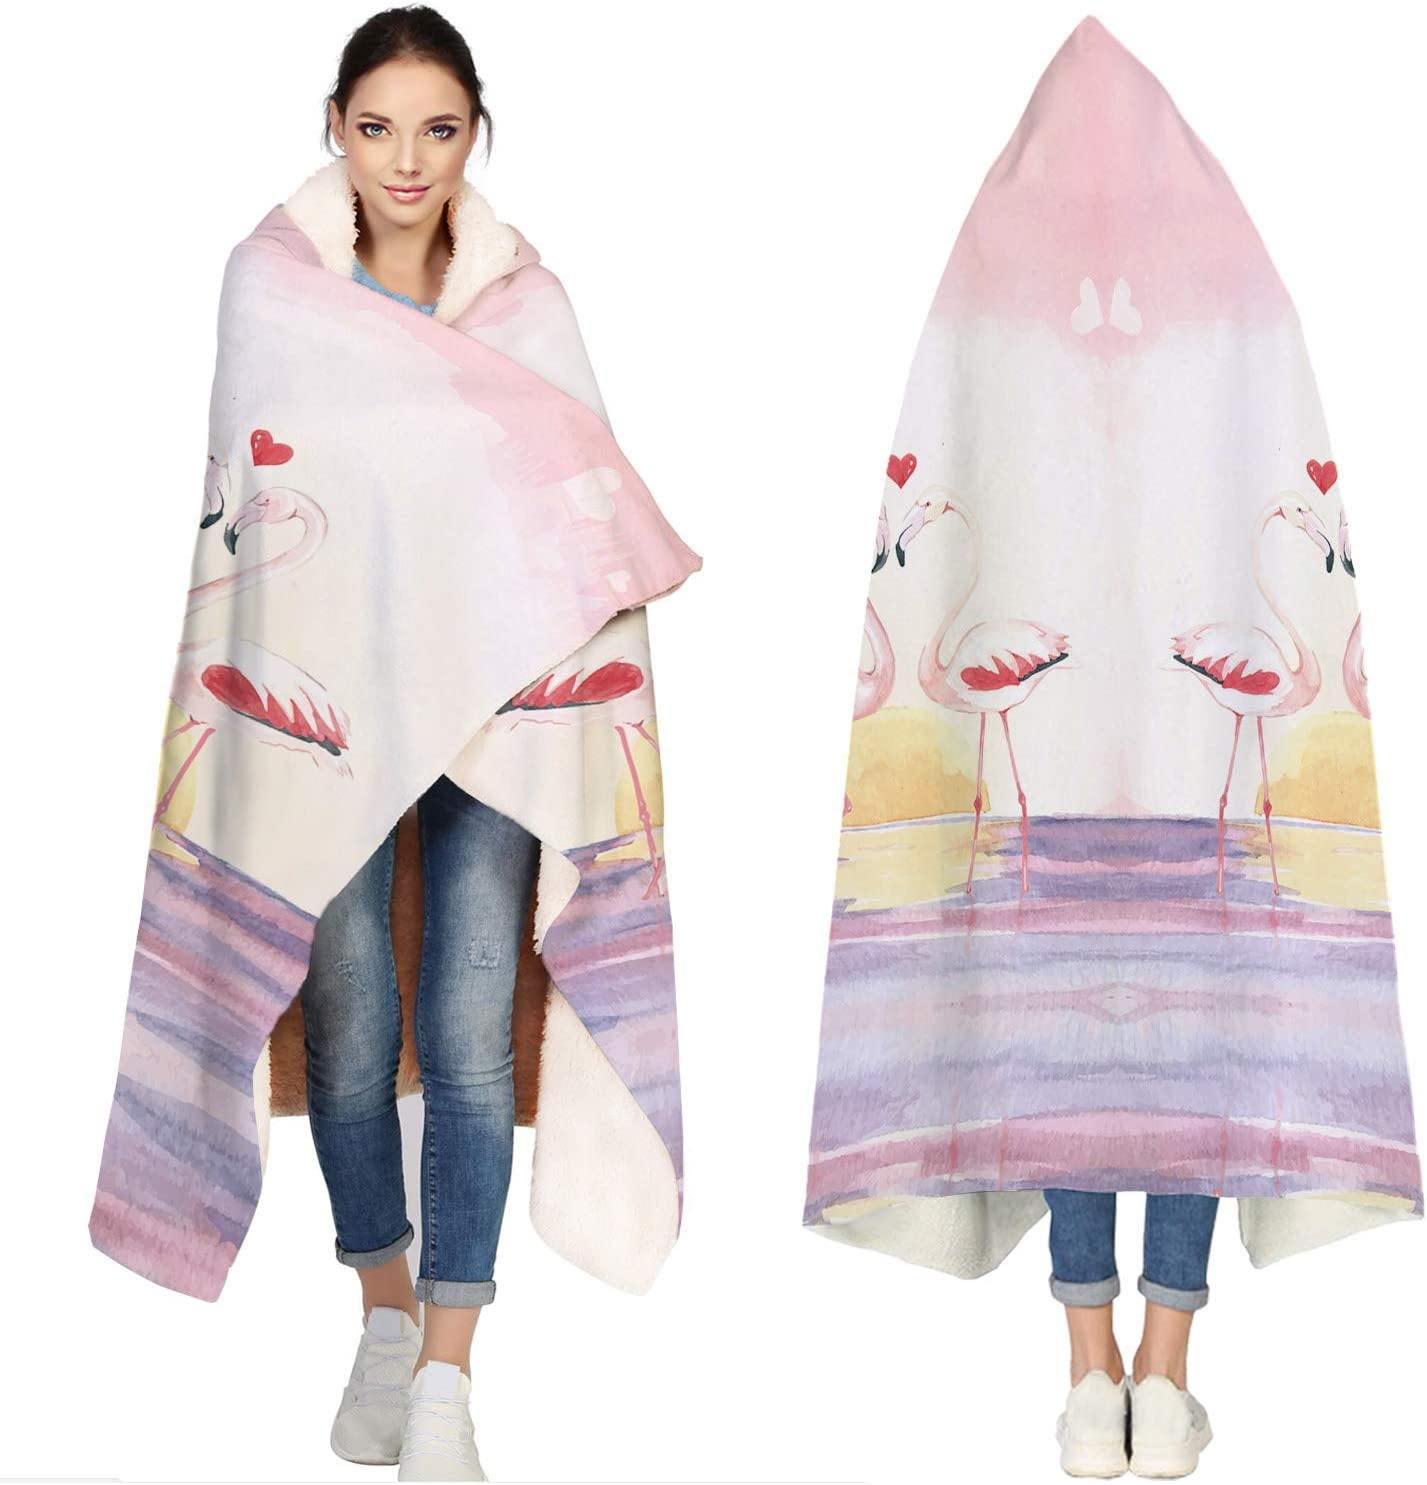 Seven Roses Hooded 35% Don't miss the campaign OFF Blankets for Bat - Flamingo Adults Beautiful